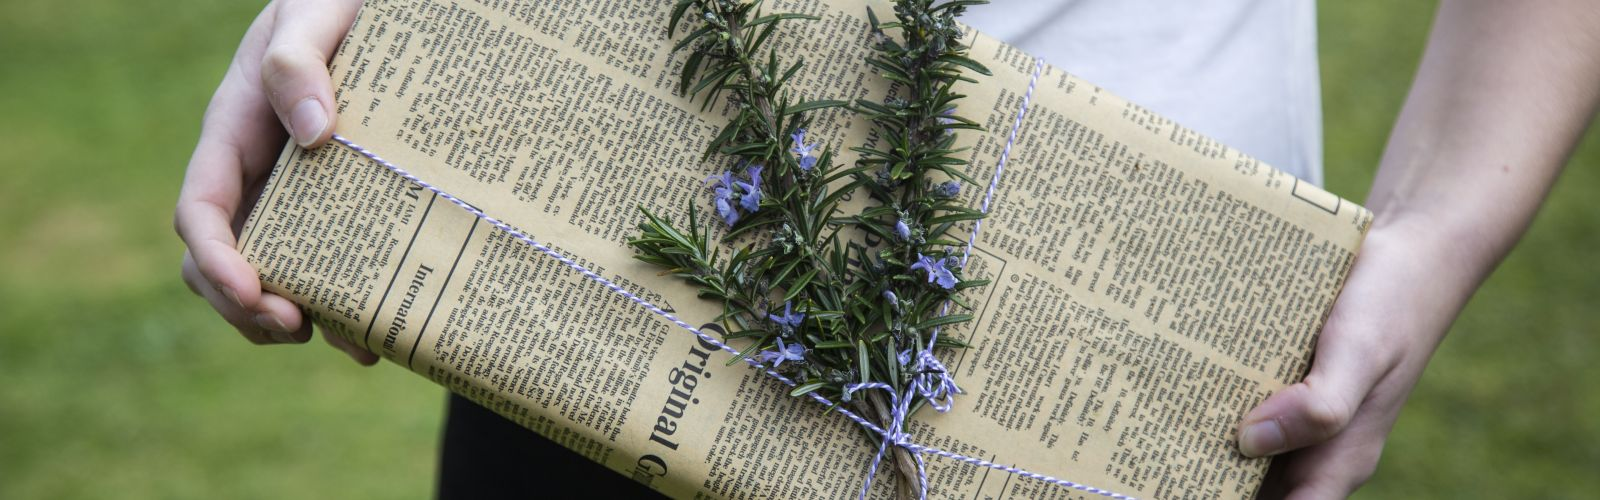 Gift with newspaper gift wrap on springs on rosemary